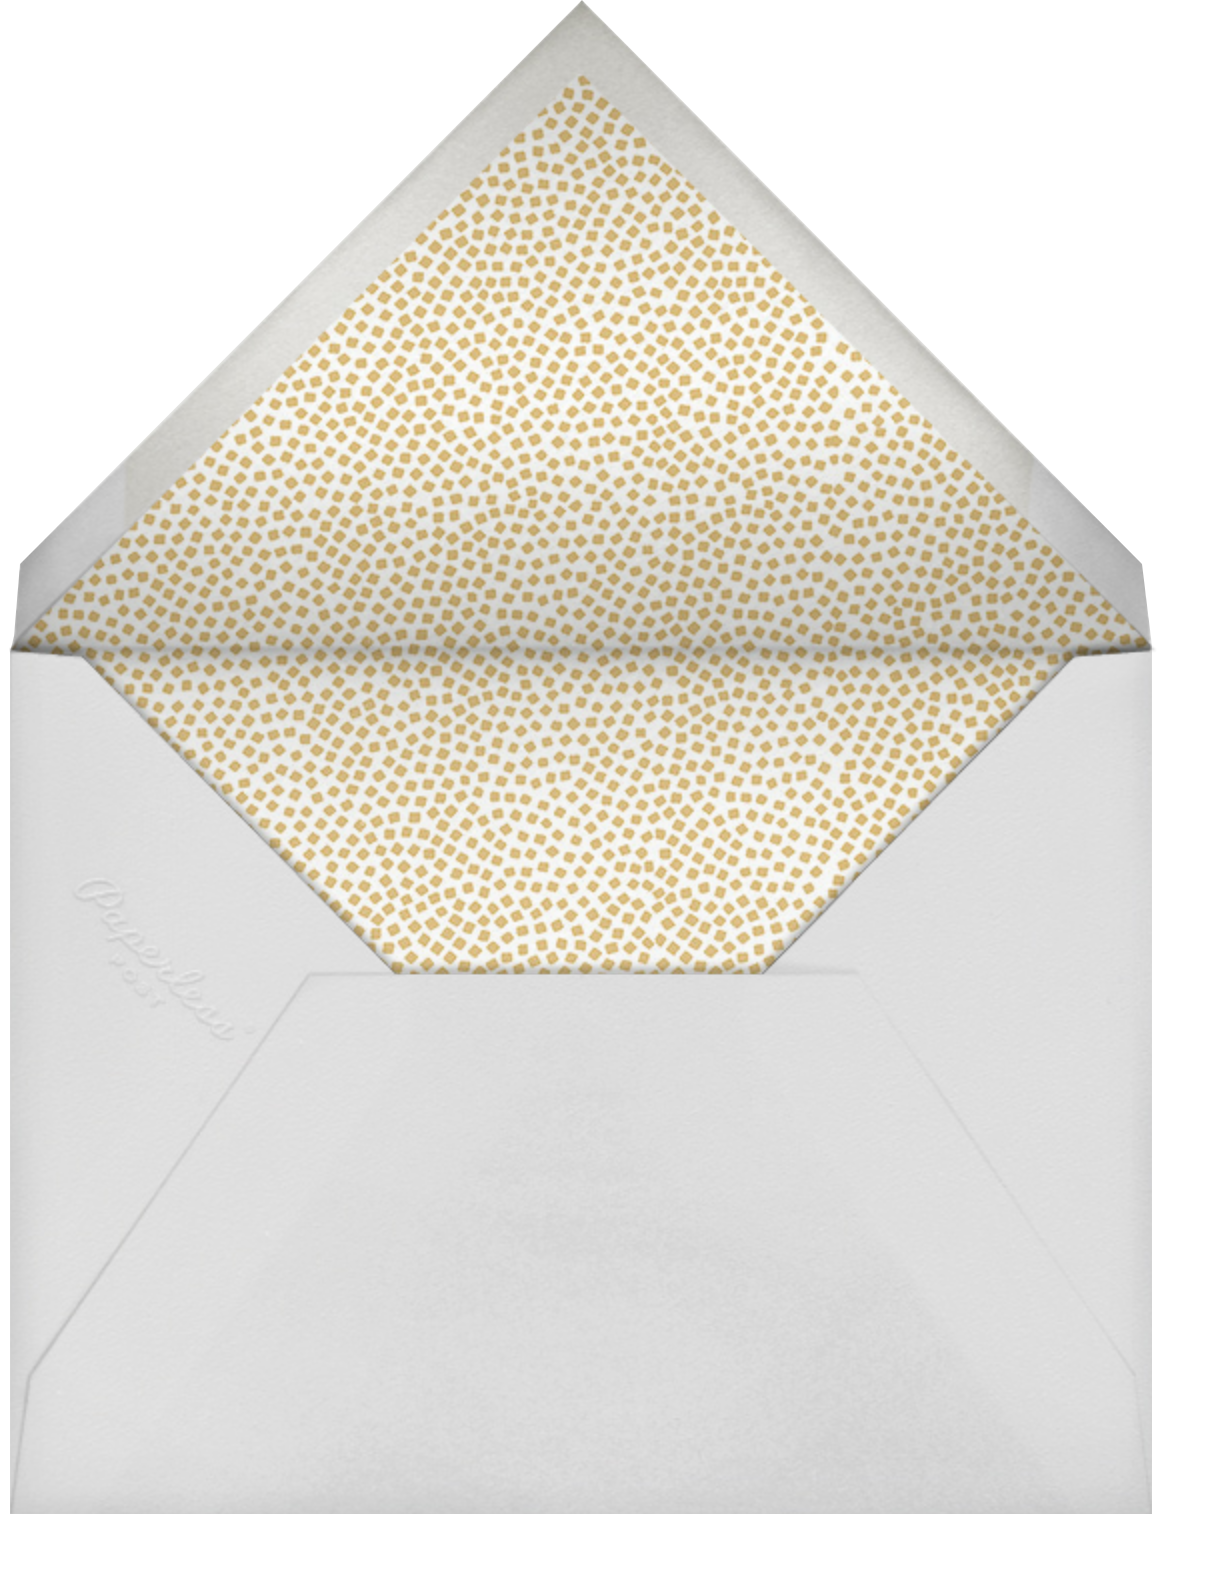 Tempest (Invitation) - Kelly Wearstler - All - envelope back